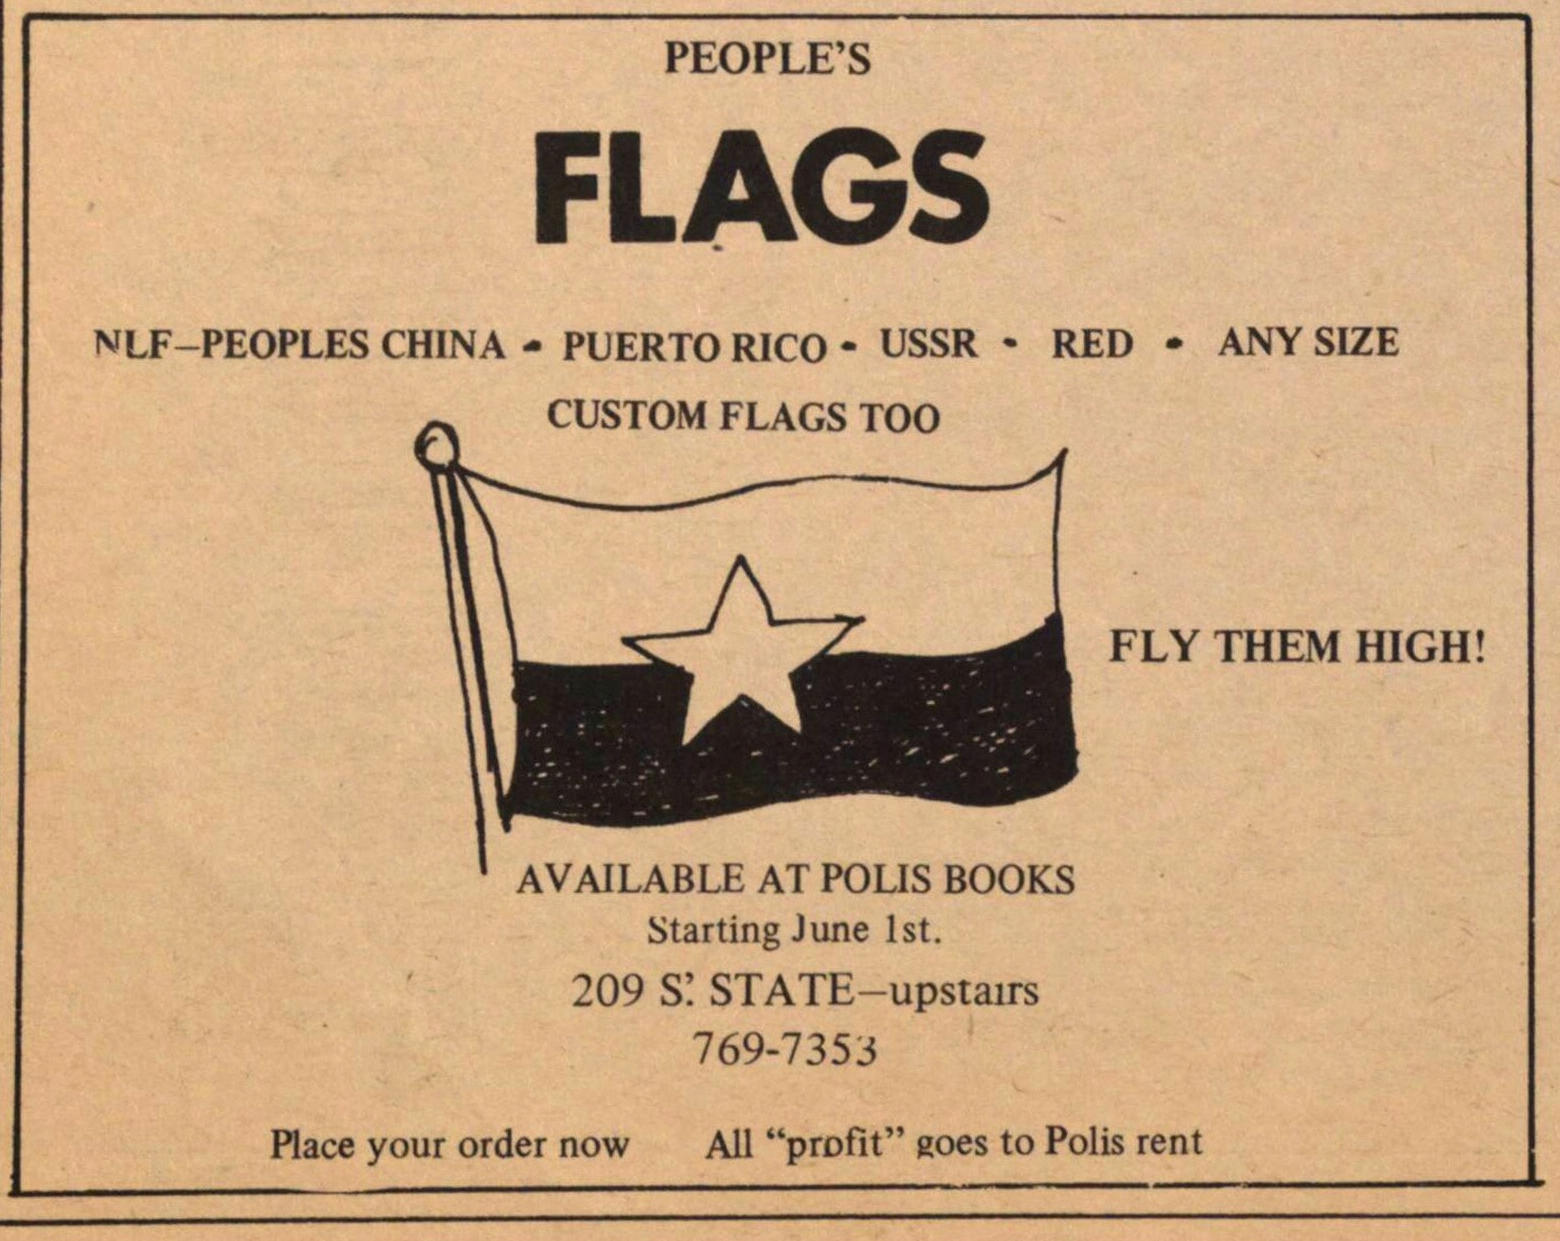 People's Flags image